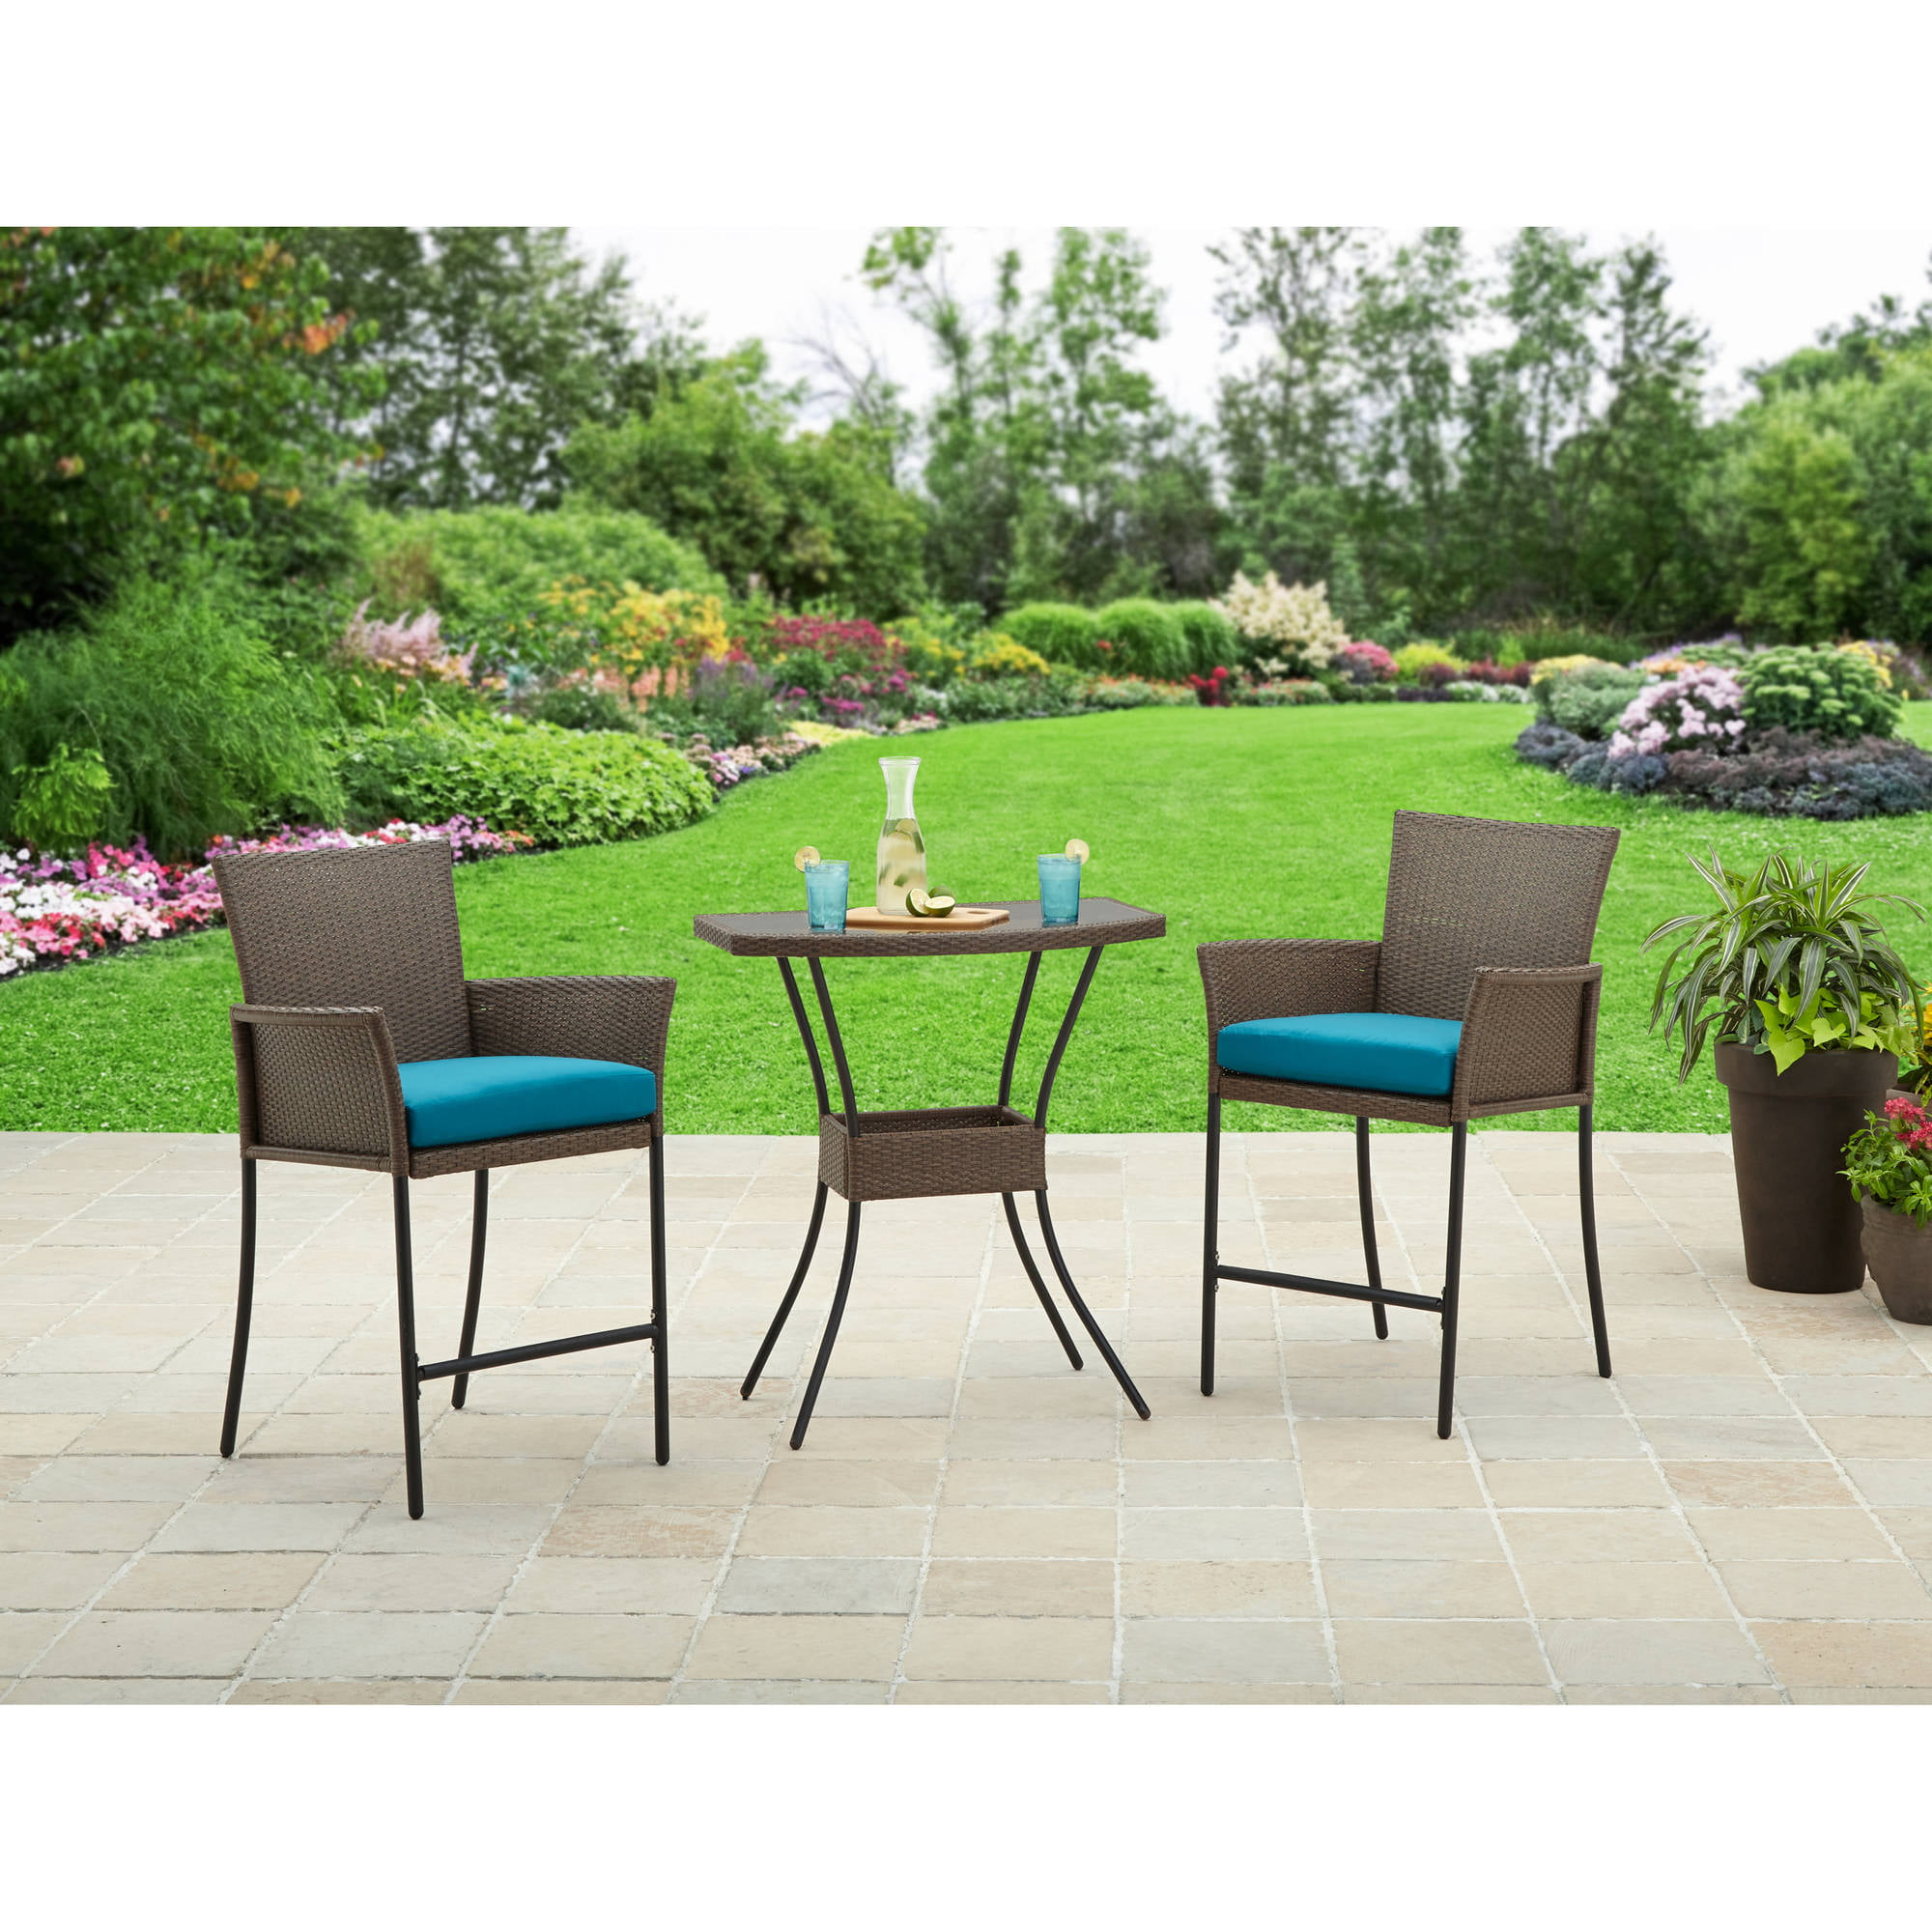 better homes and gardens fairfield bay 3 piece balcony bistro set walmartcom - Garden Furniture 3 Piece